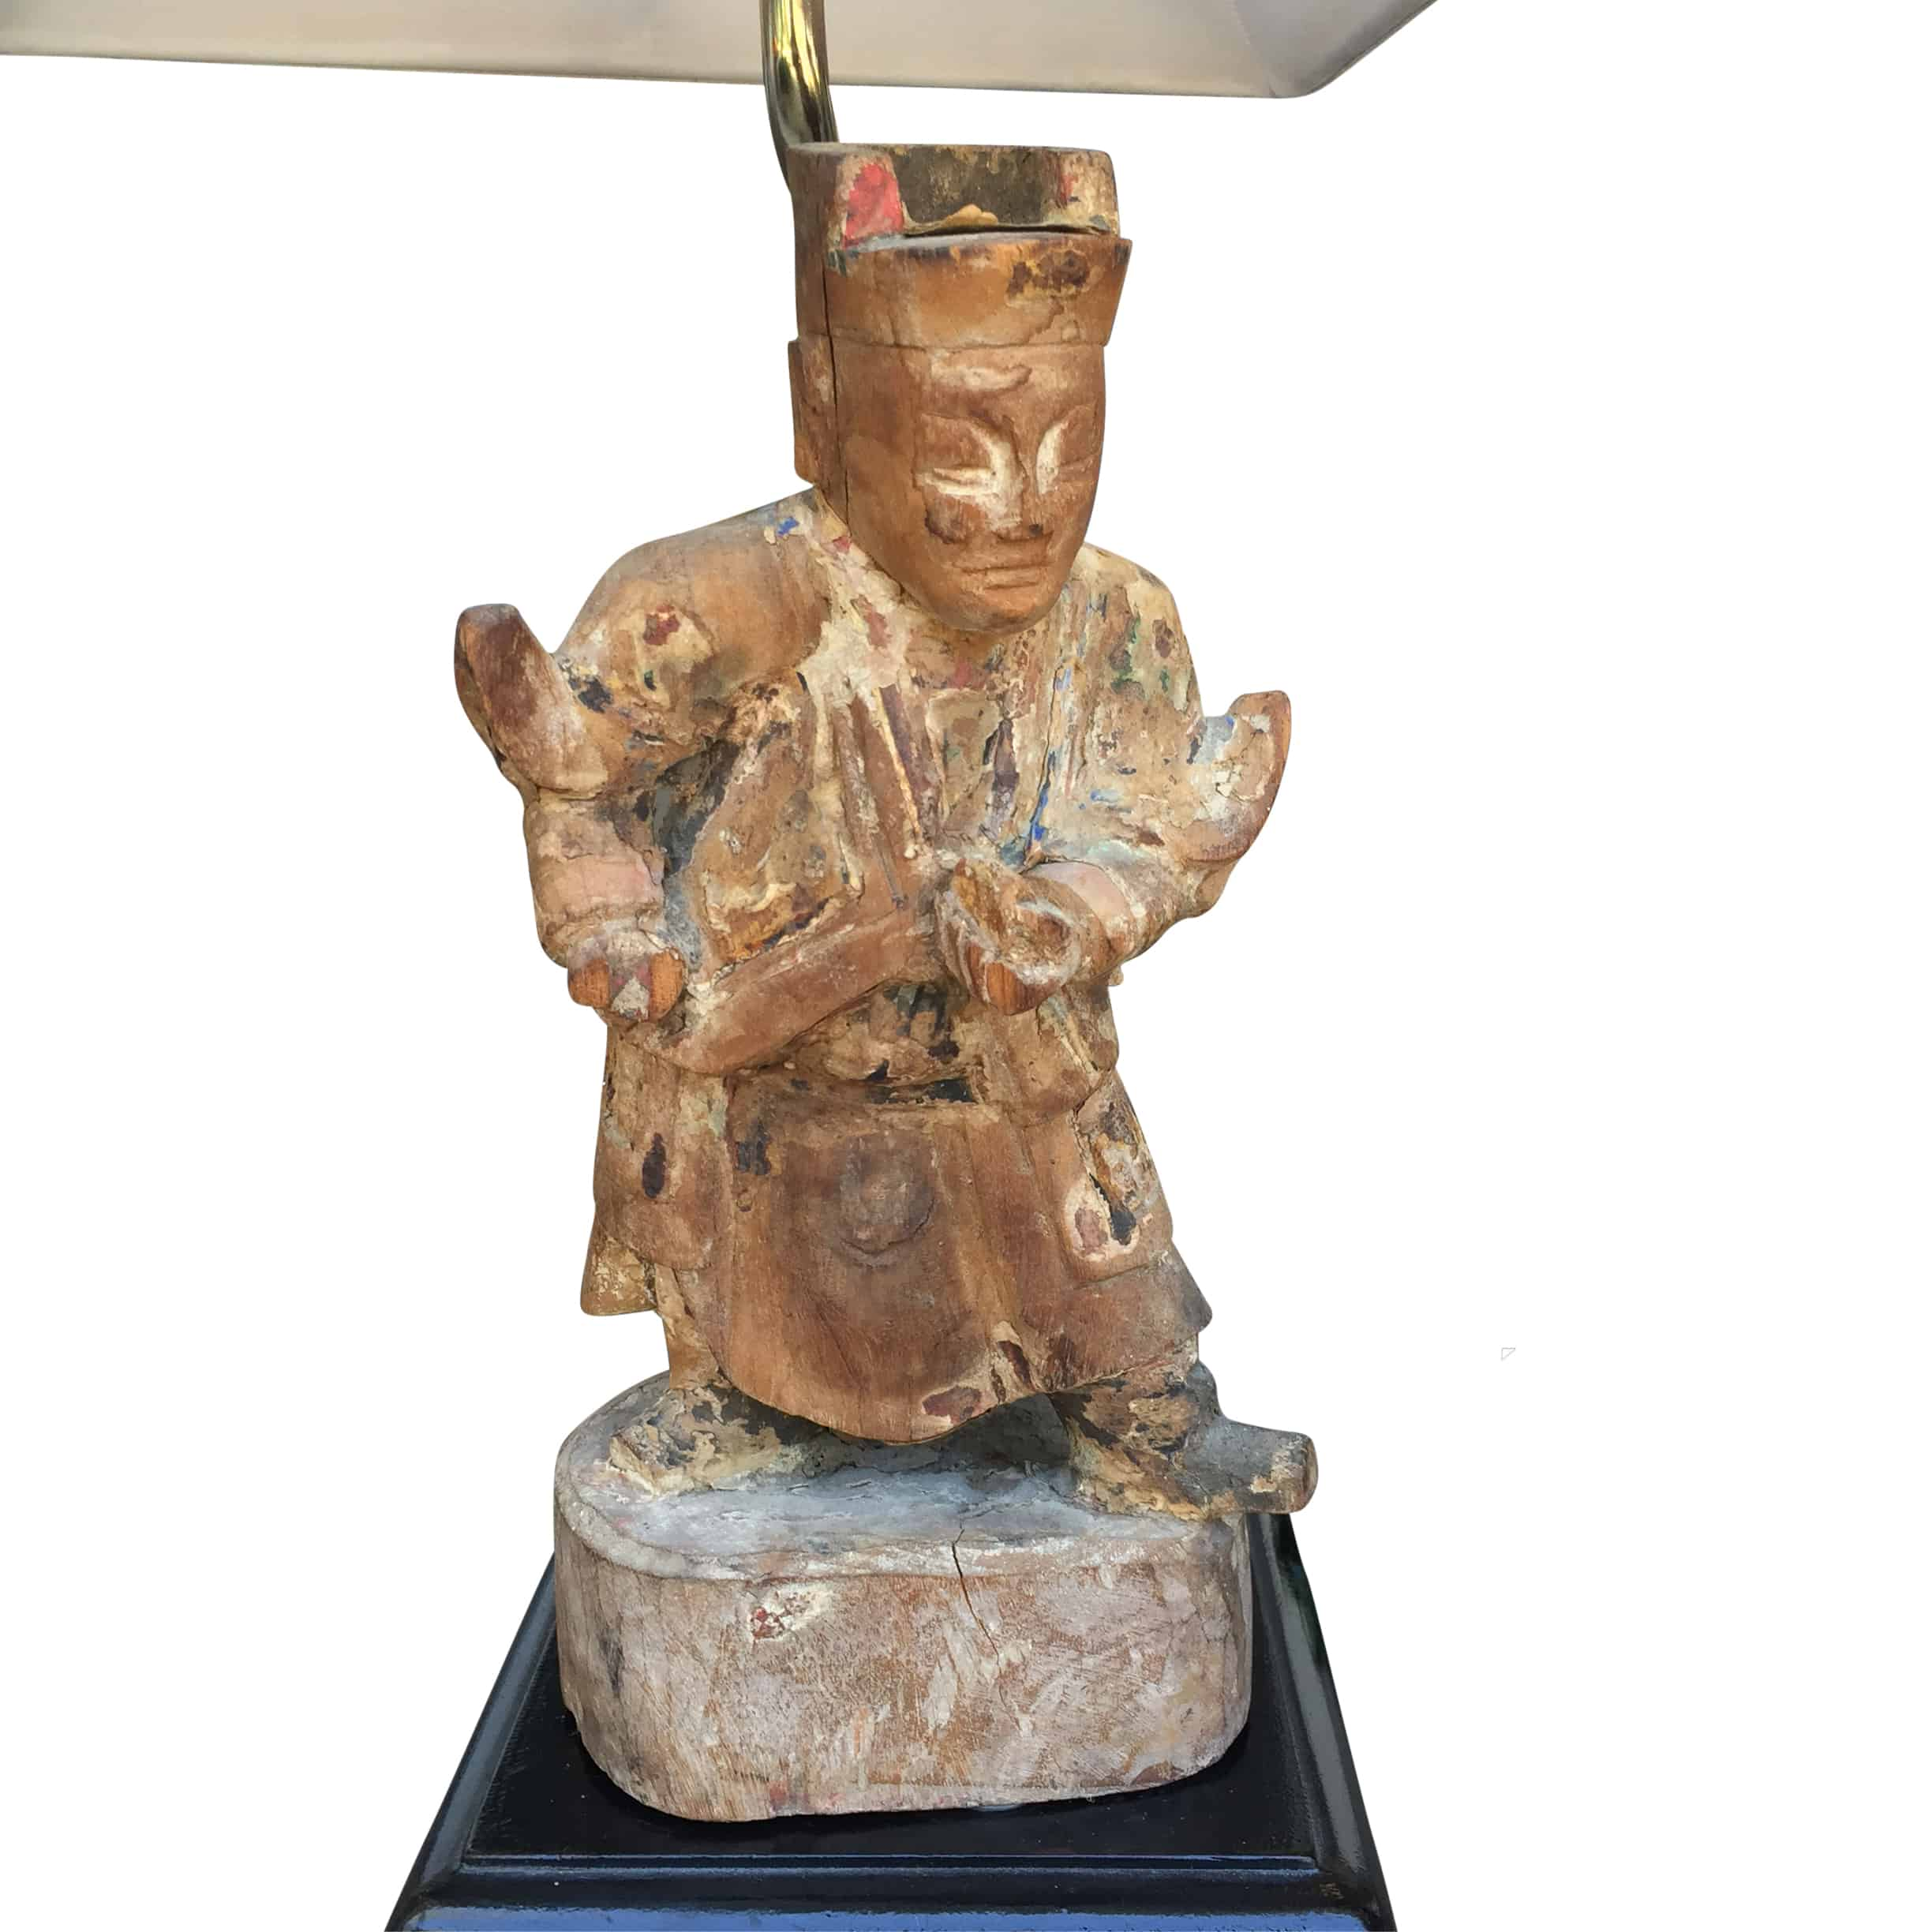 Antique Asian Figurine Lamp Cabana Home